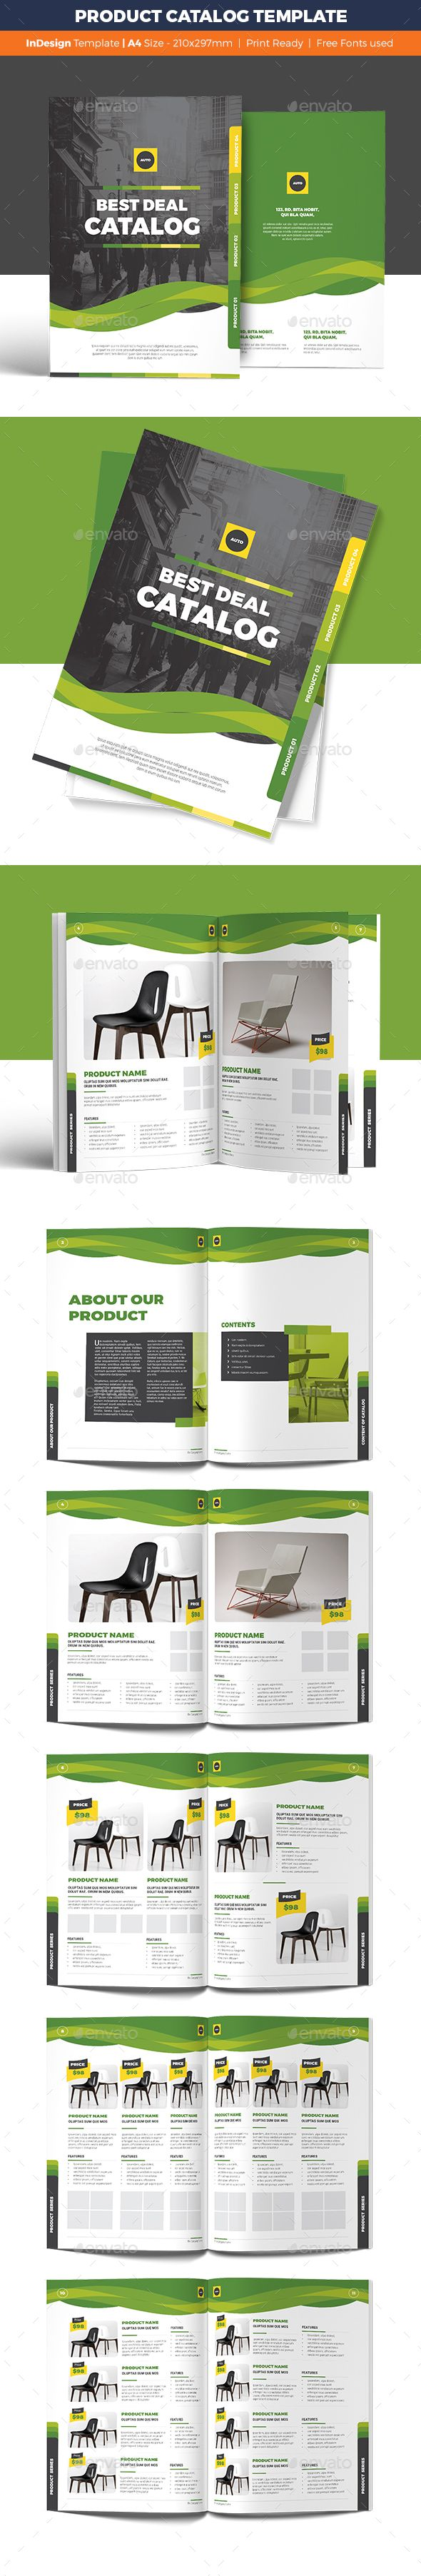 25 best ideas about product catalog template on pinterest booklet layout booklet template. Black Bedroom Furniture Sets. Home Design Ideas